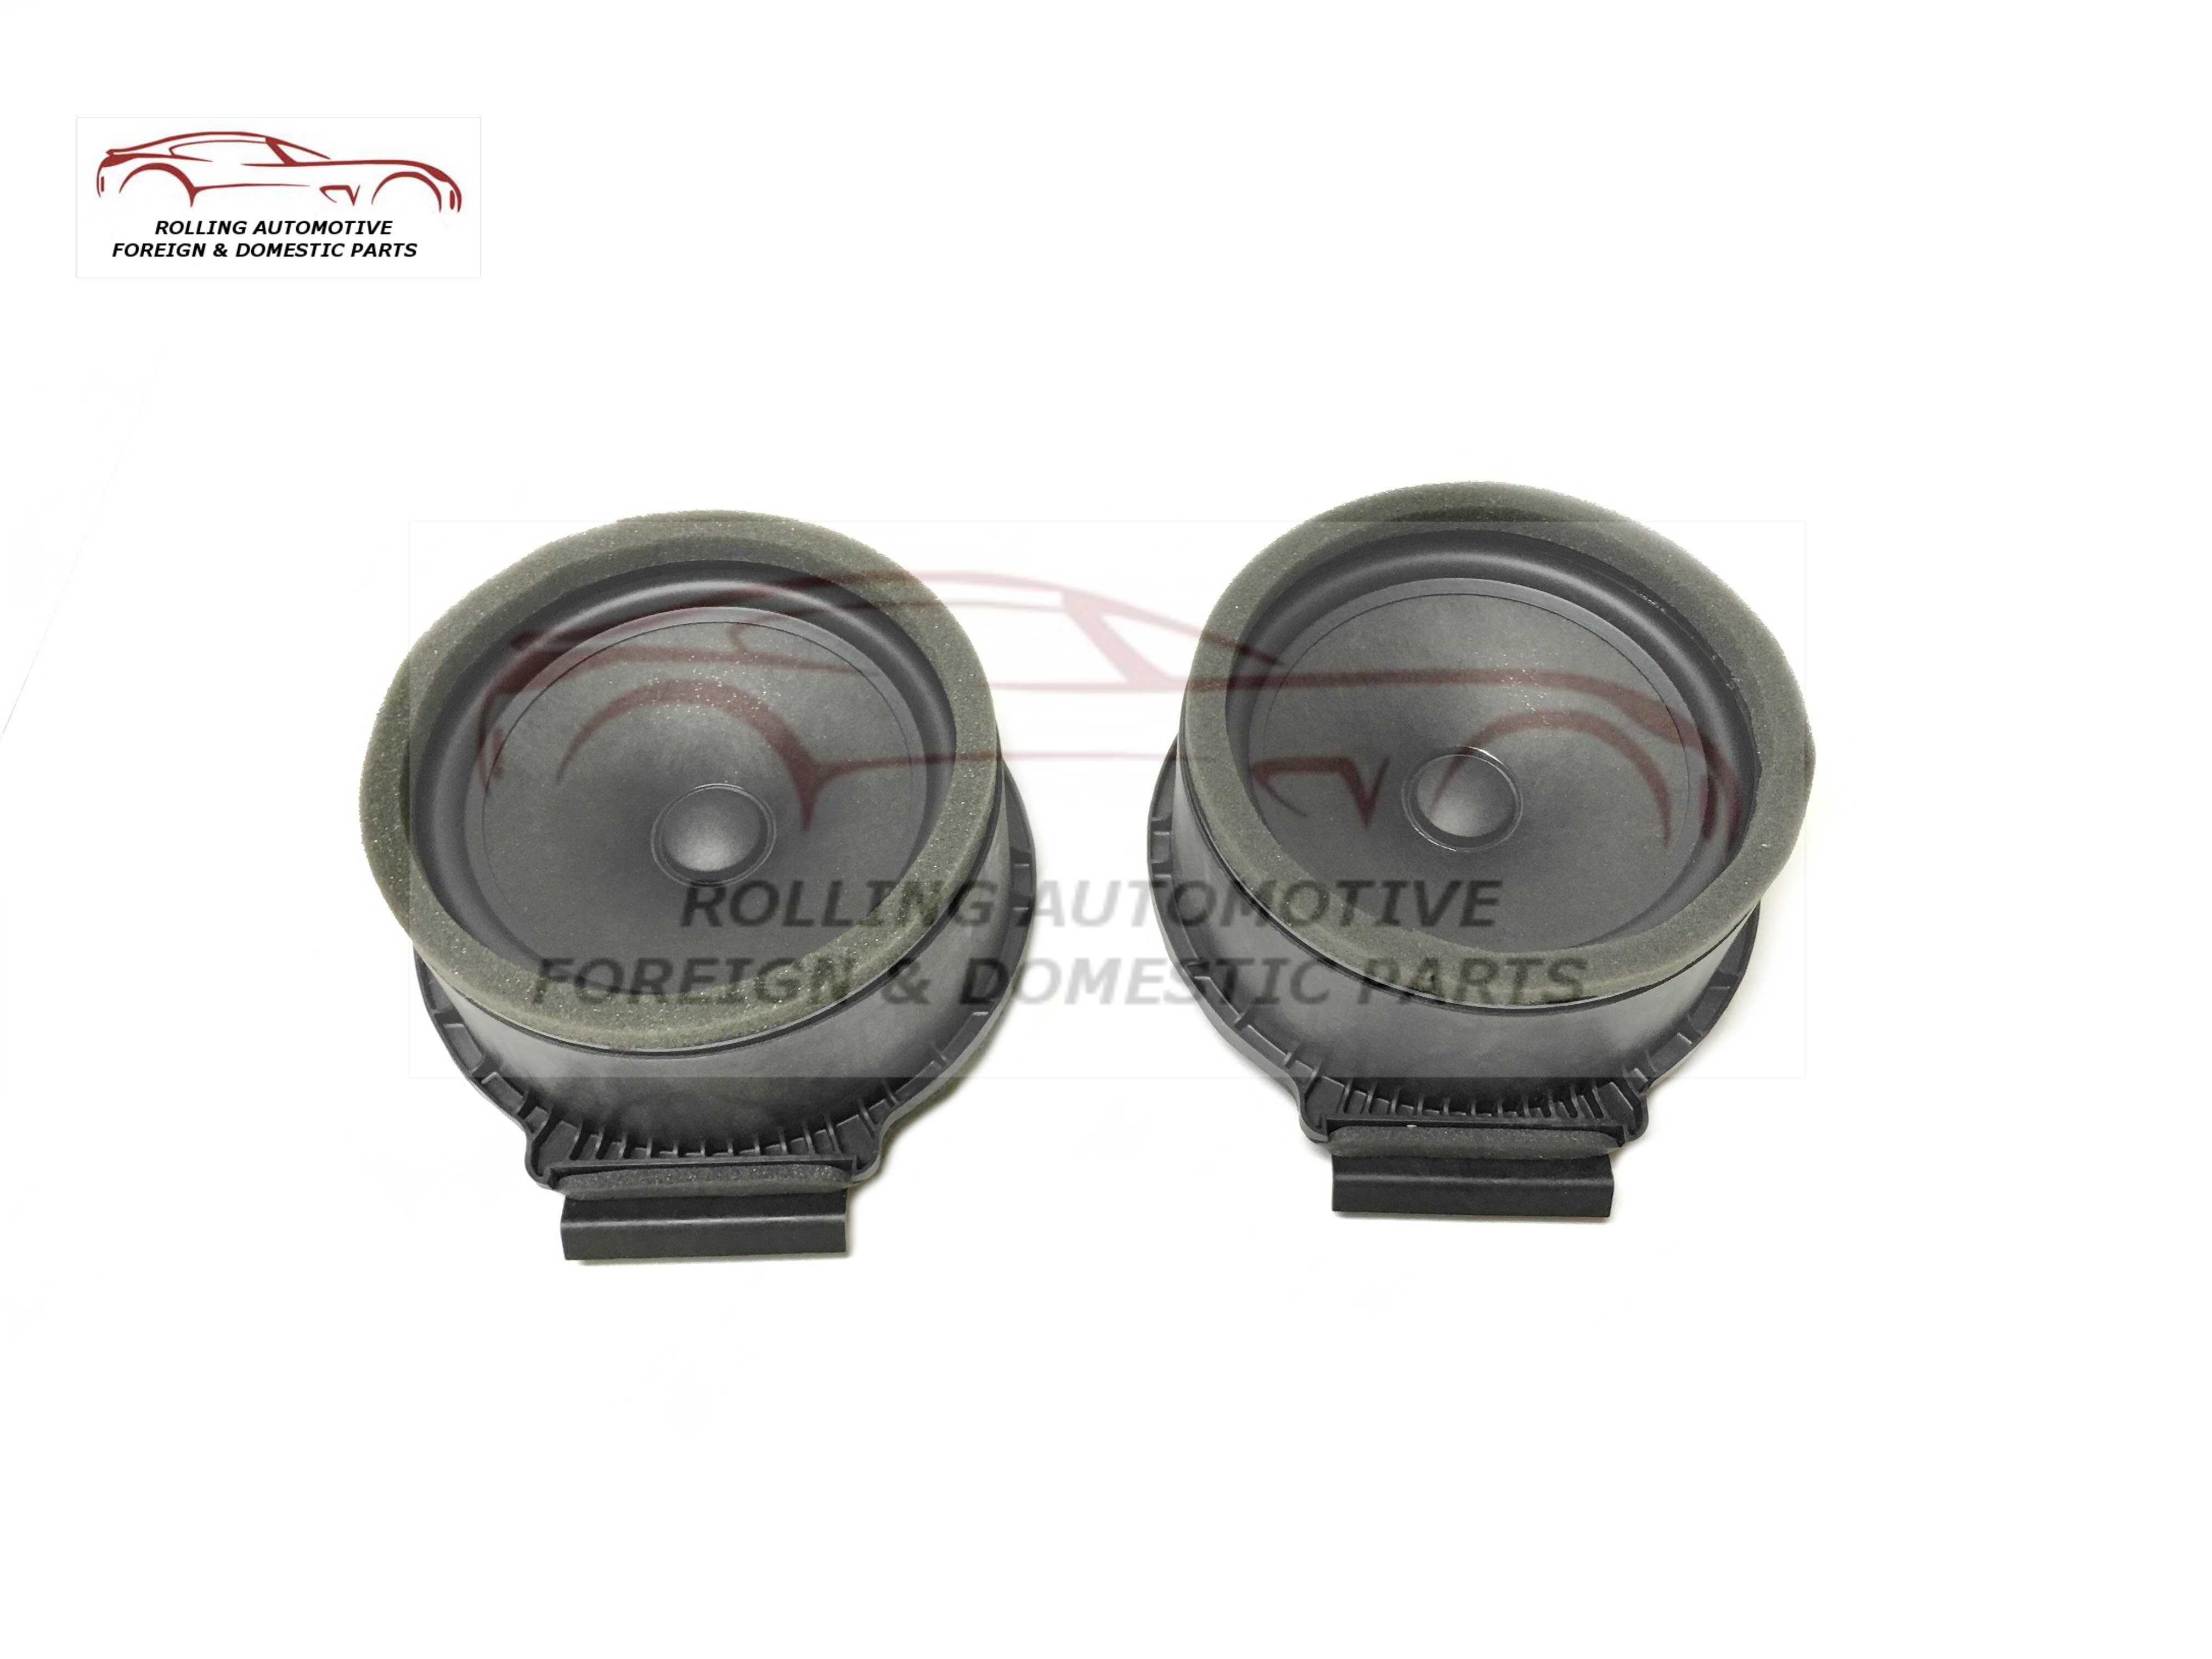 Chevrolet Camaro Front Door Speaker New OEM 92199586 Boston Acoustics Pair 2pcs  sc 1 st  Rolling Automotive & Chevrolet Camaro Front Door Speaker New OEM 92199586 Boston ...